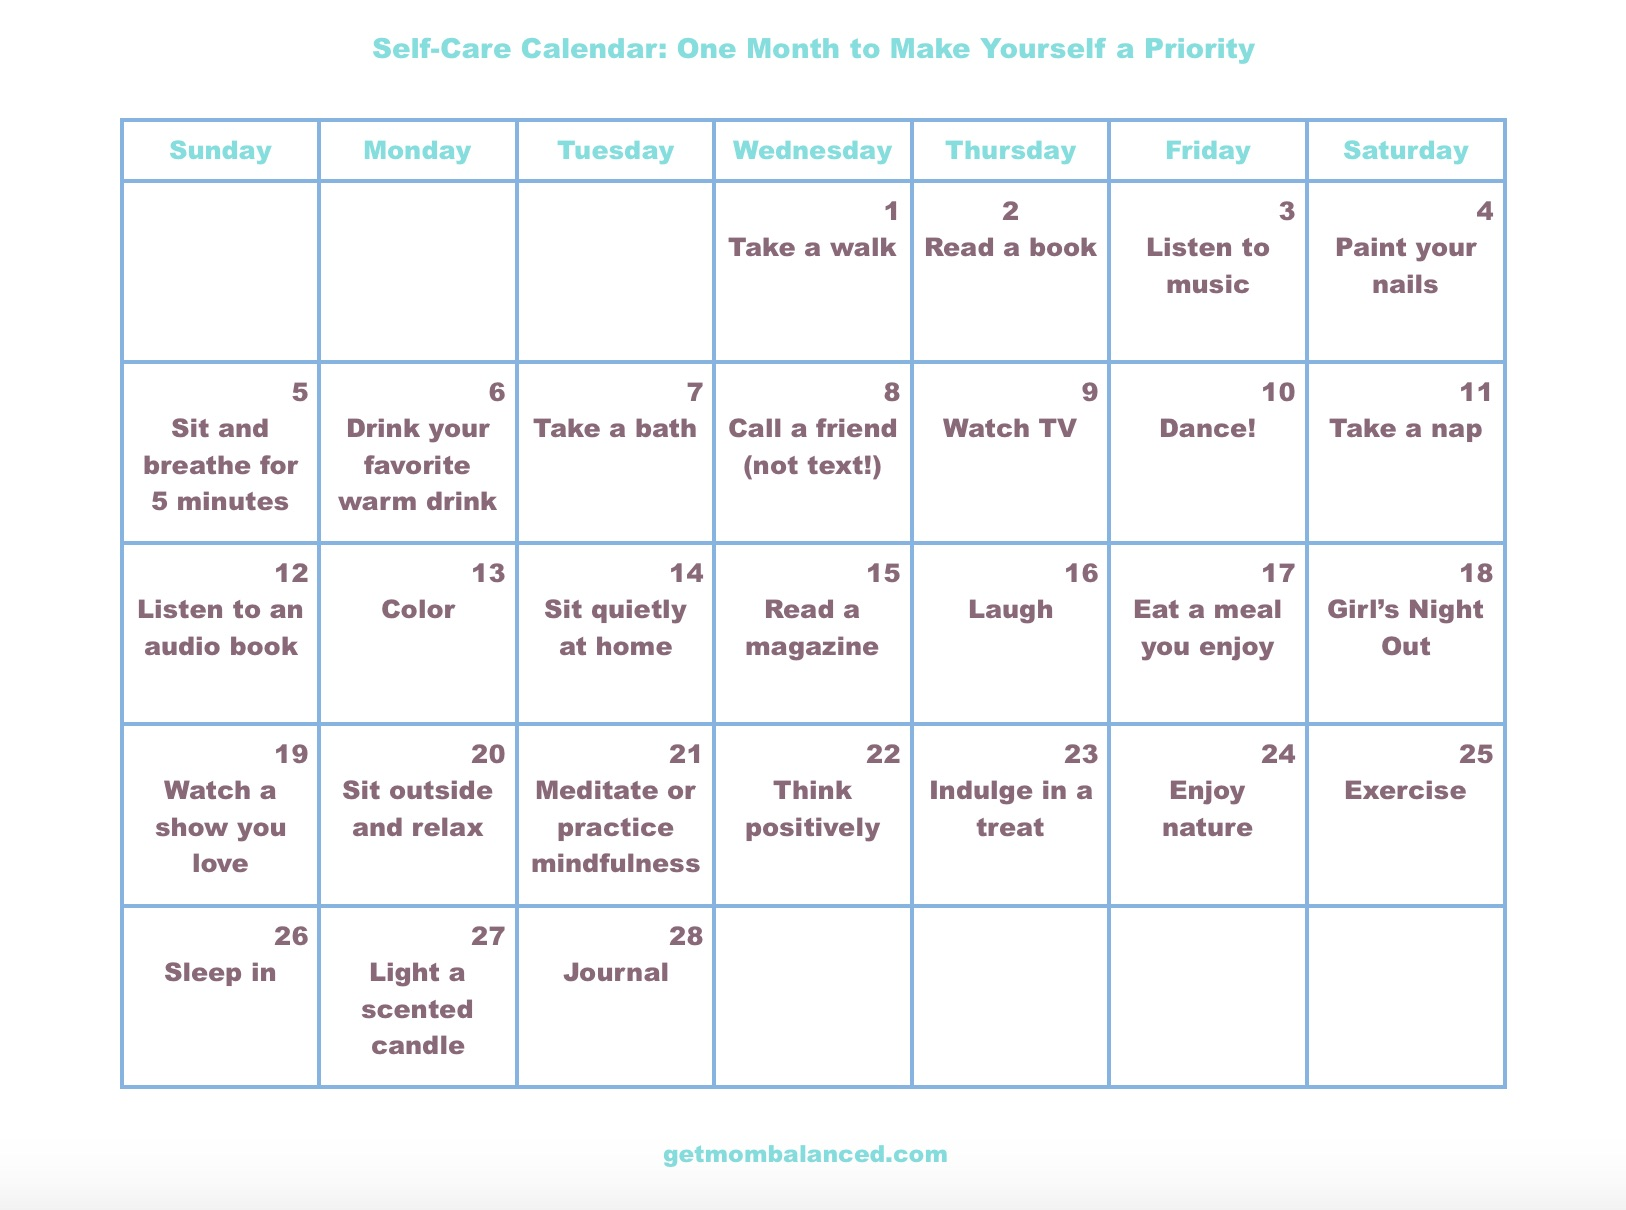 Self Care Calendar For Busy Moms And Women